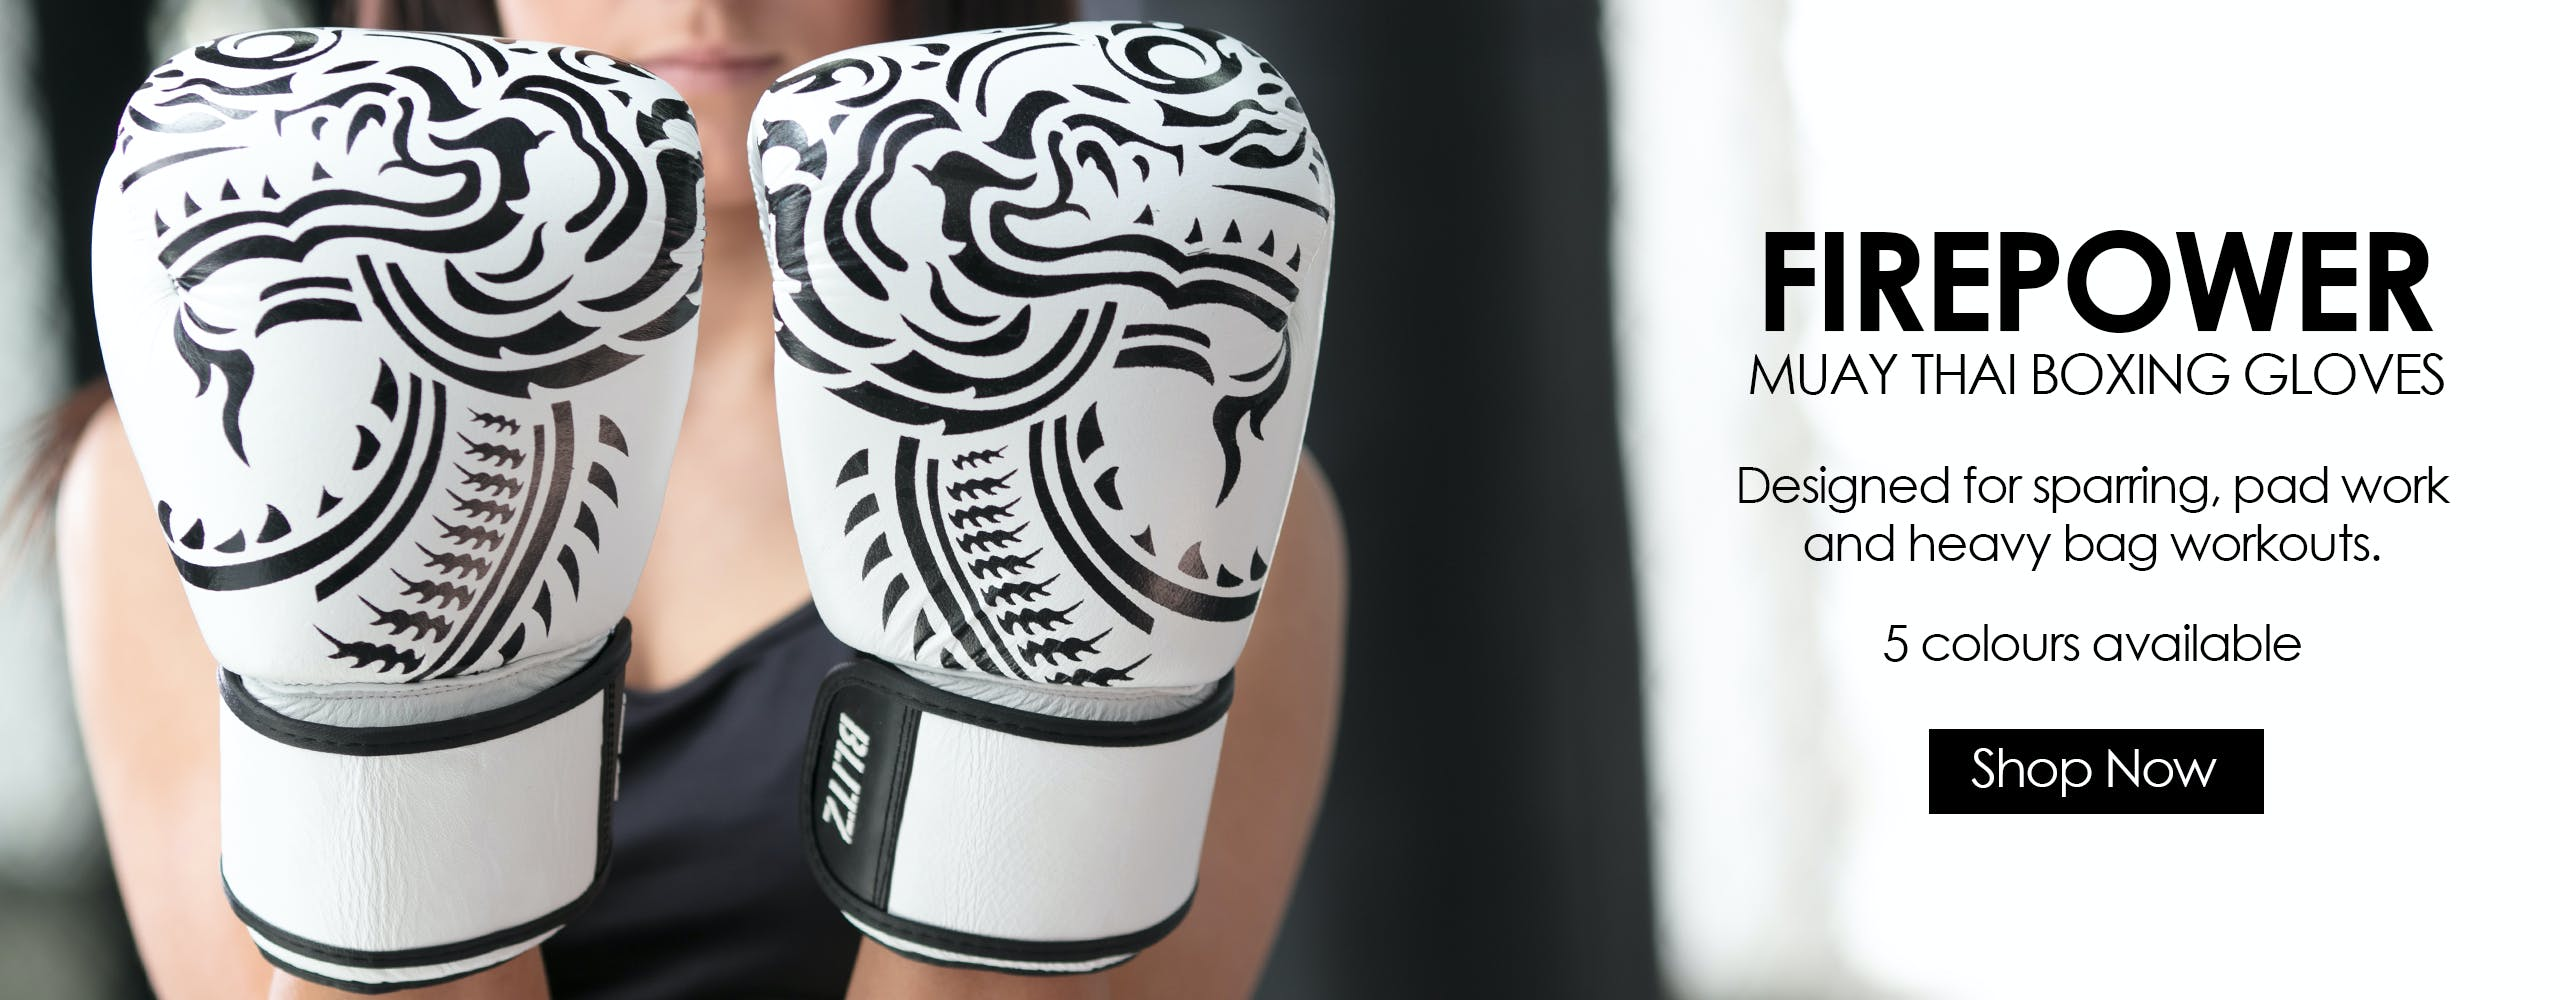 Firepower Muay Thai Boxing Gloves designed for sparring, pad work and heavy bag workouts